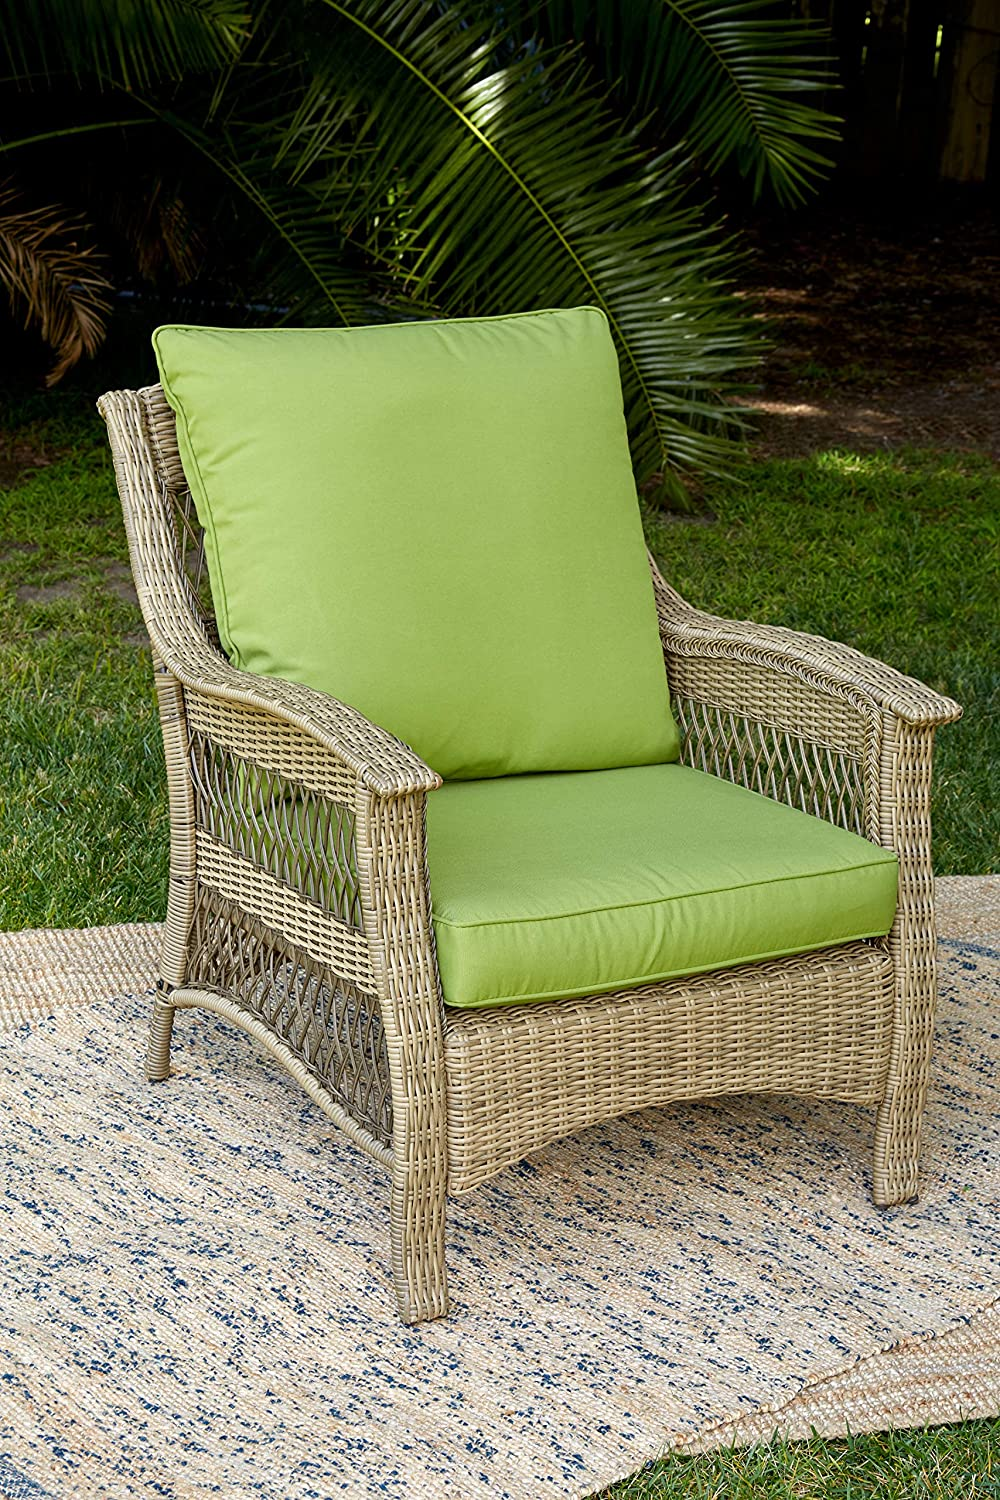 Green Cushions Brown Wicker Quality Outdoor Living 65-514297 ...